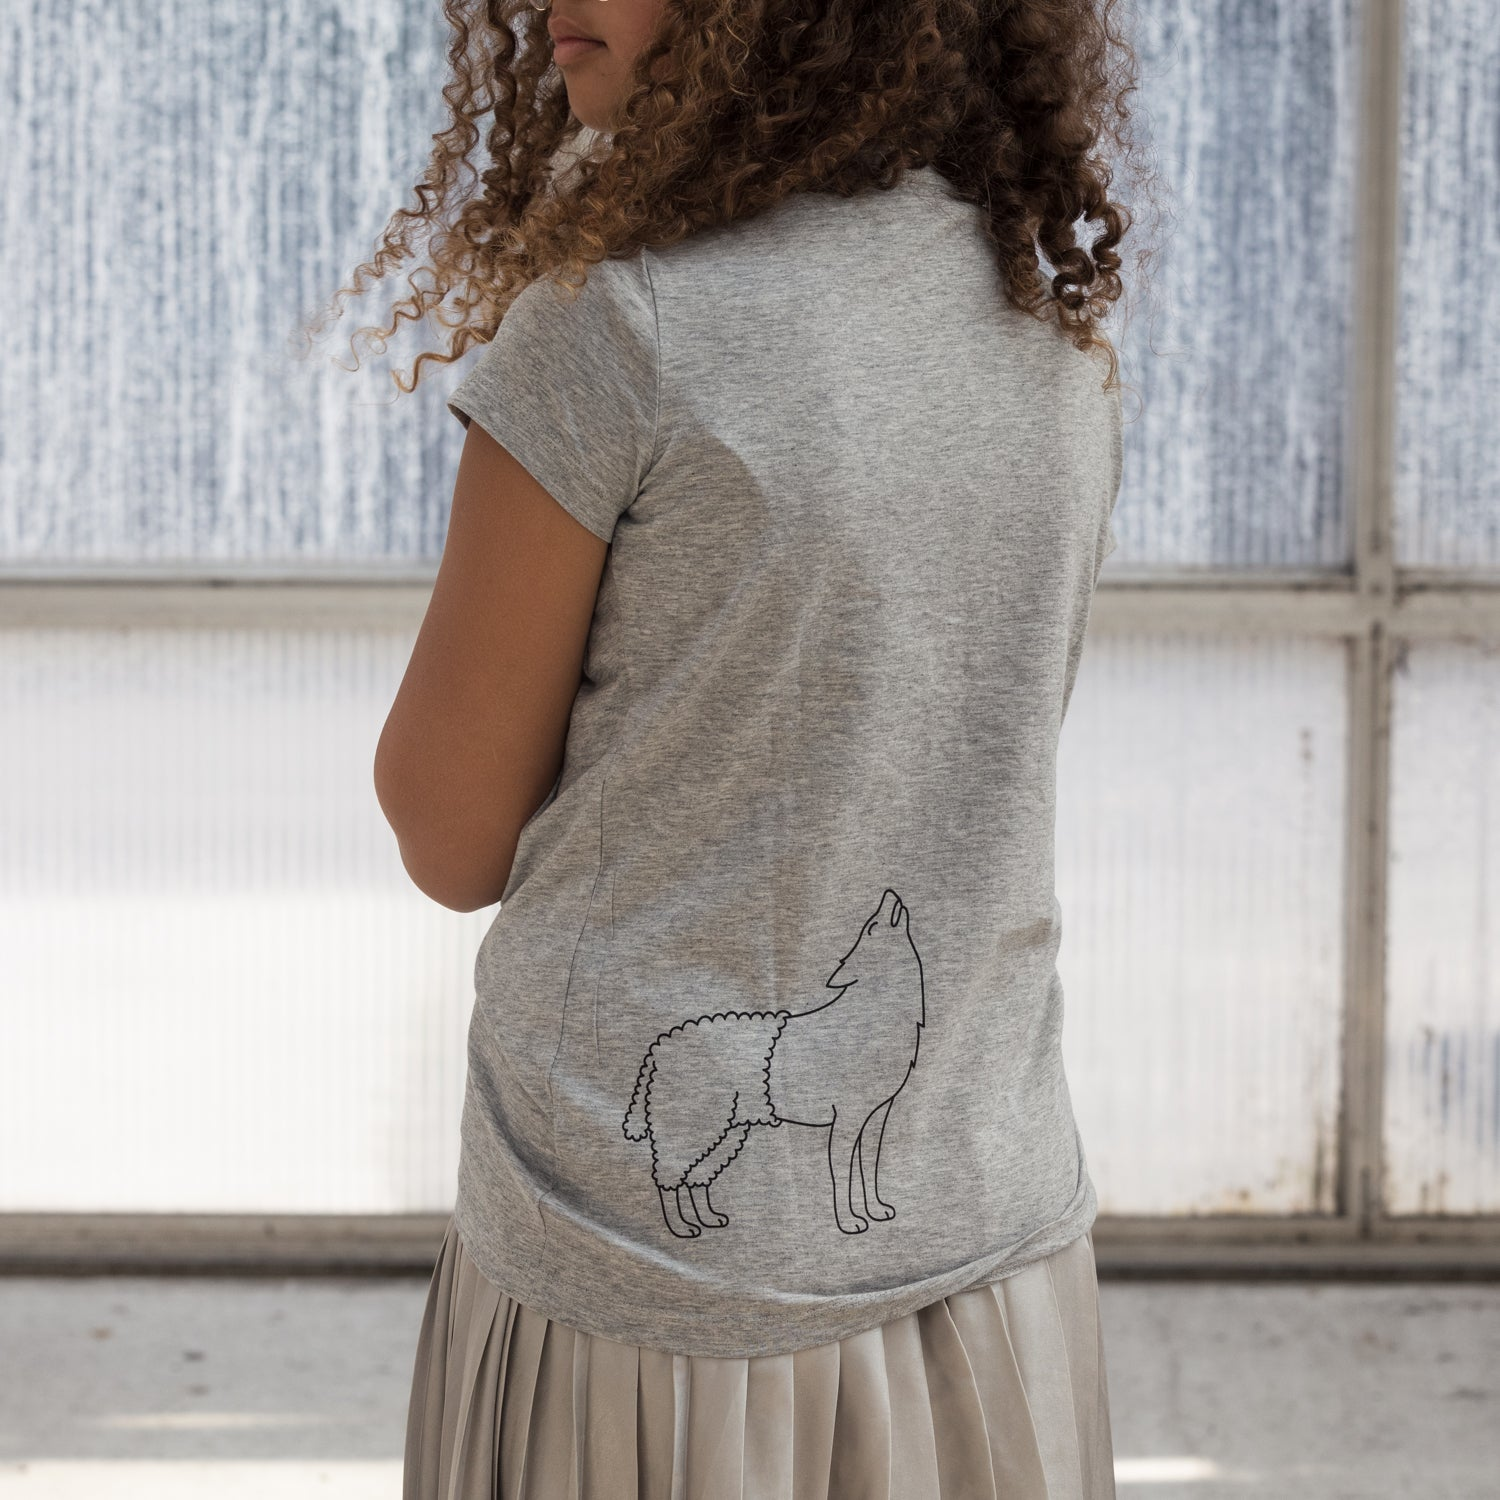 Image of T-SHIRT WOMAN short sleeve WOLFSHEEP (on the back) grey